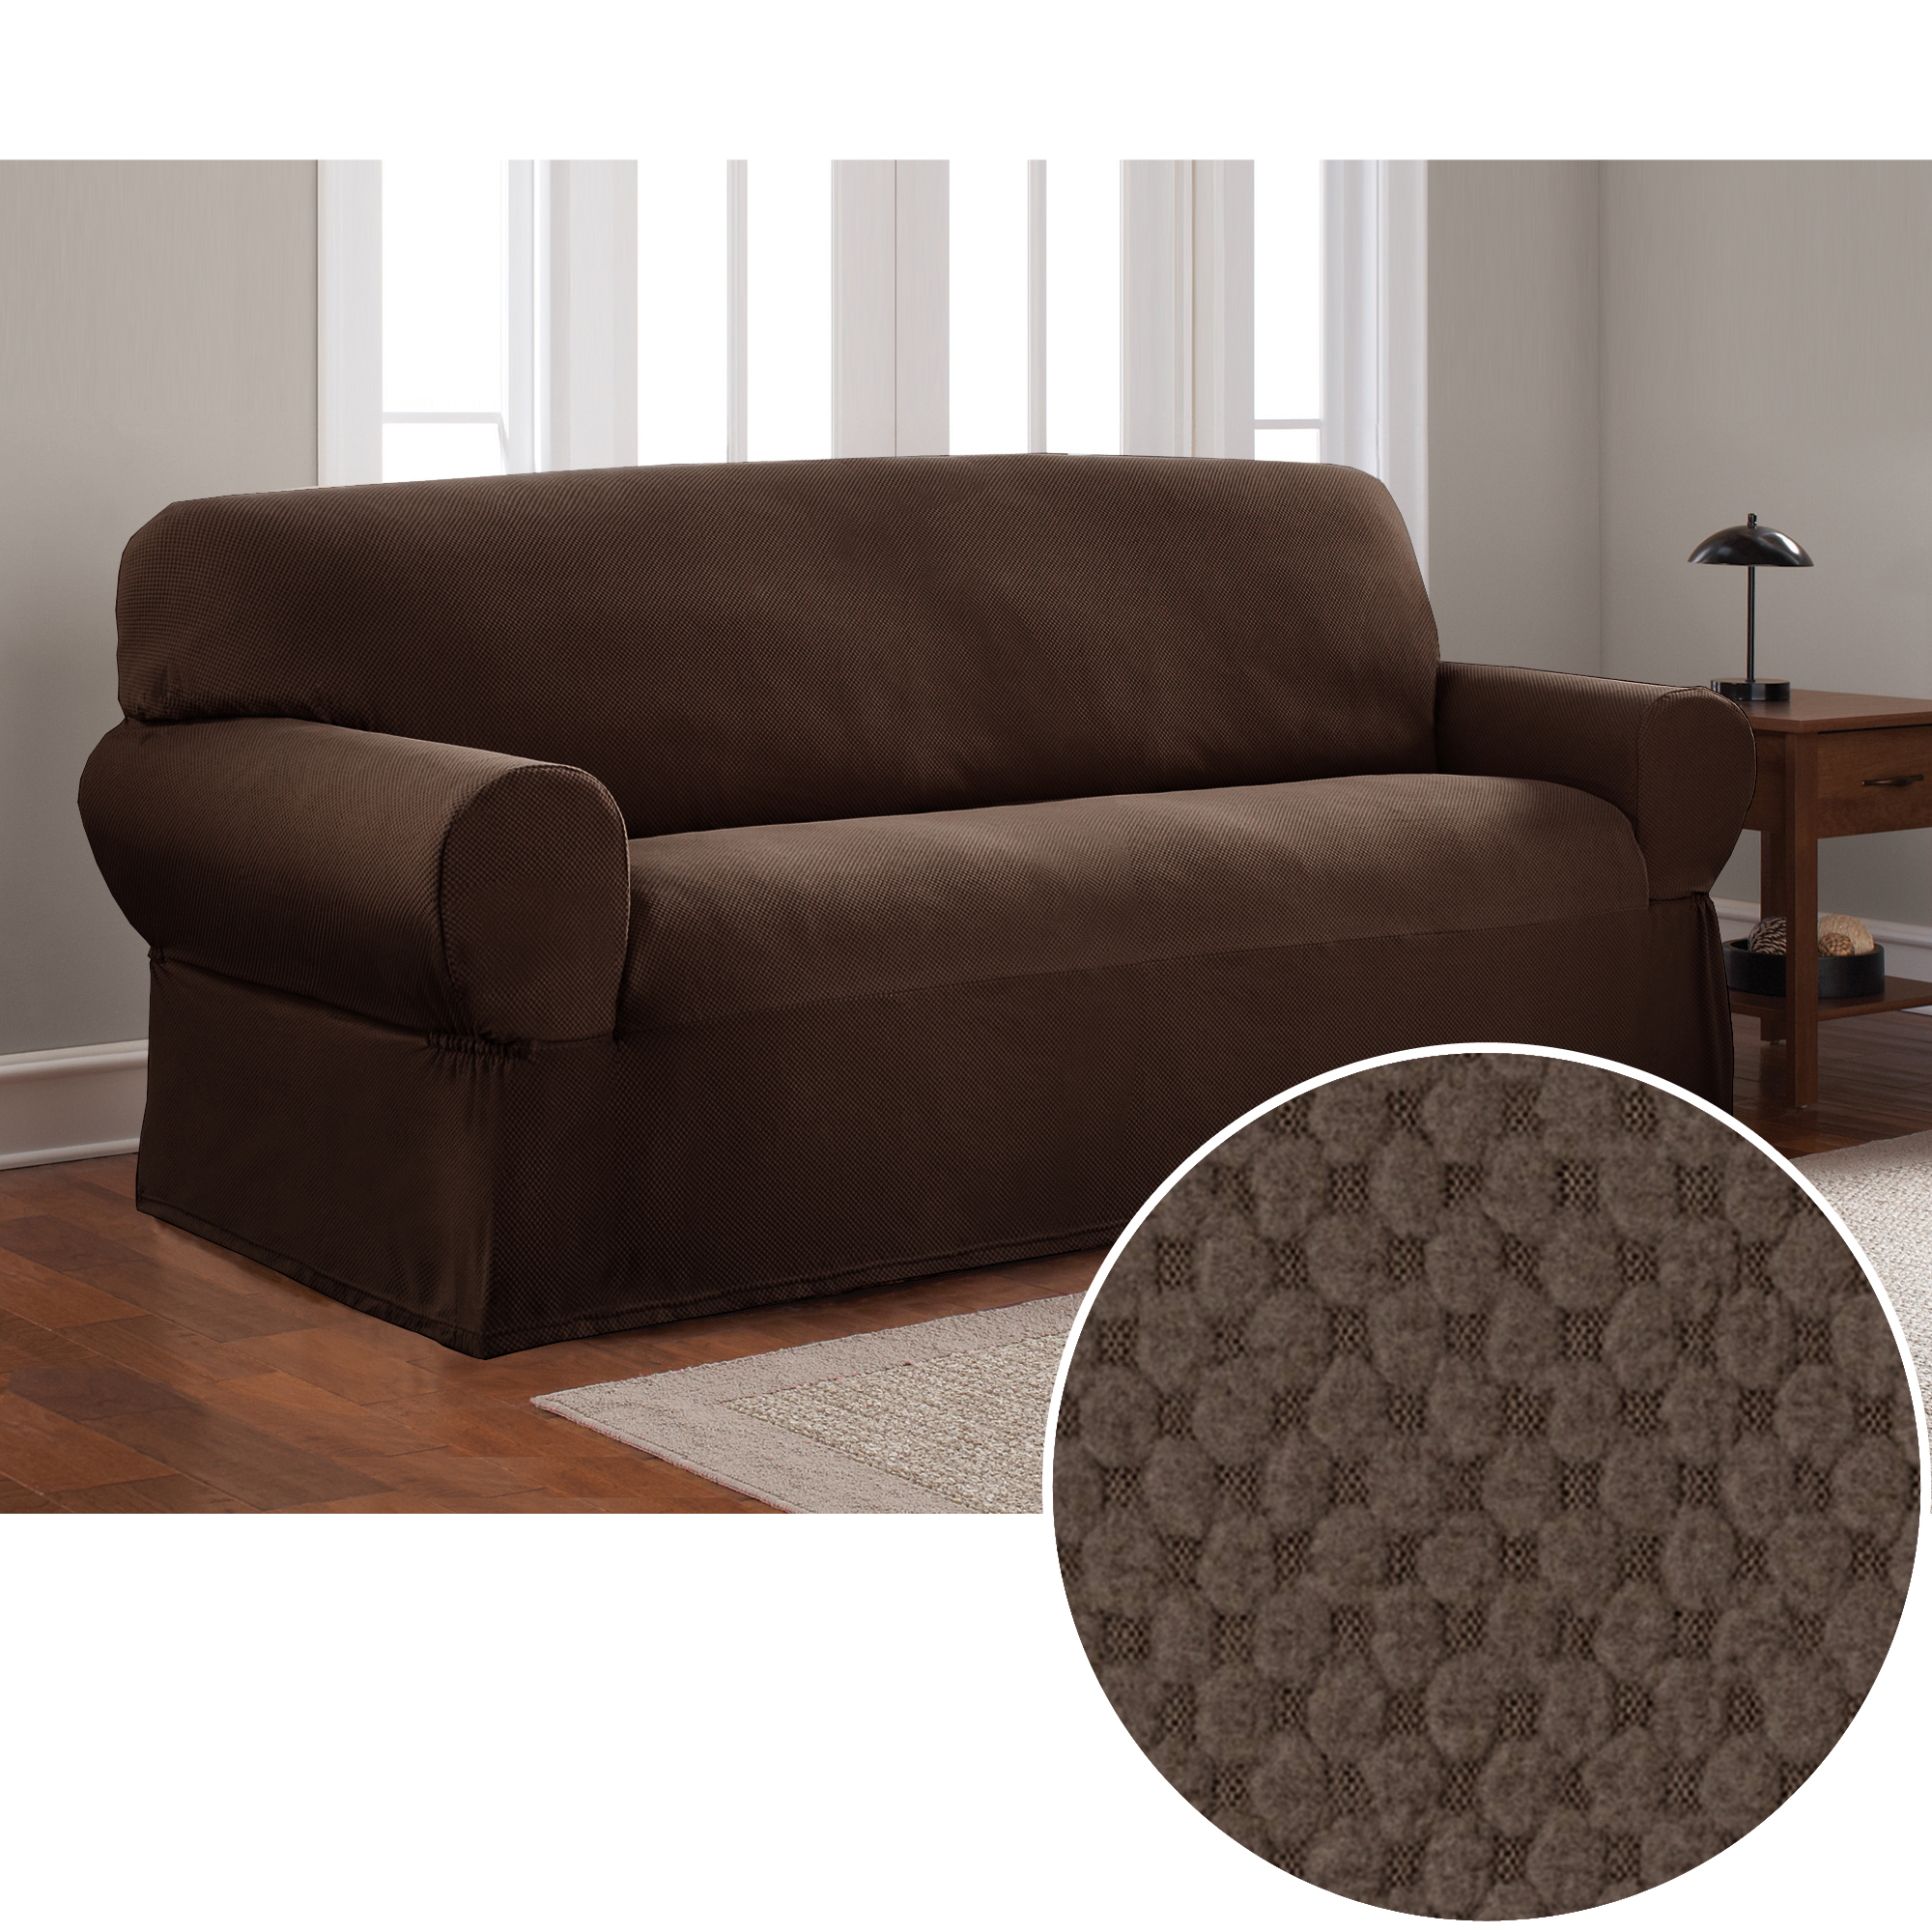 Mainstays Stretch Pixel 1 Piece Sofa Furniture Cover Slipcover, Chocolate Brown